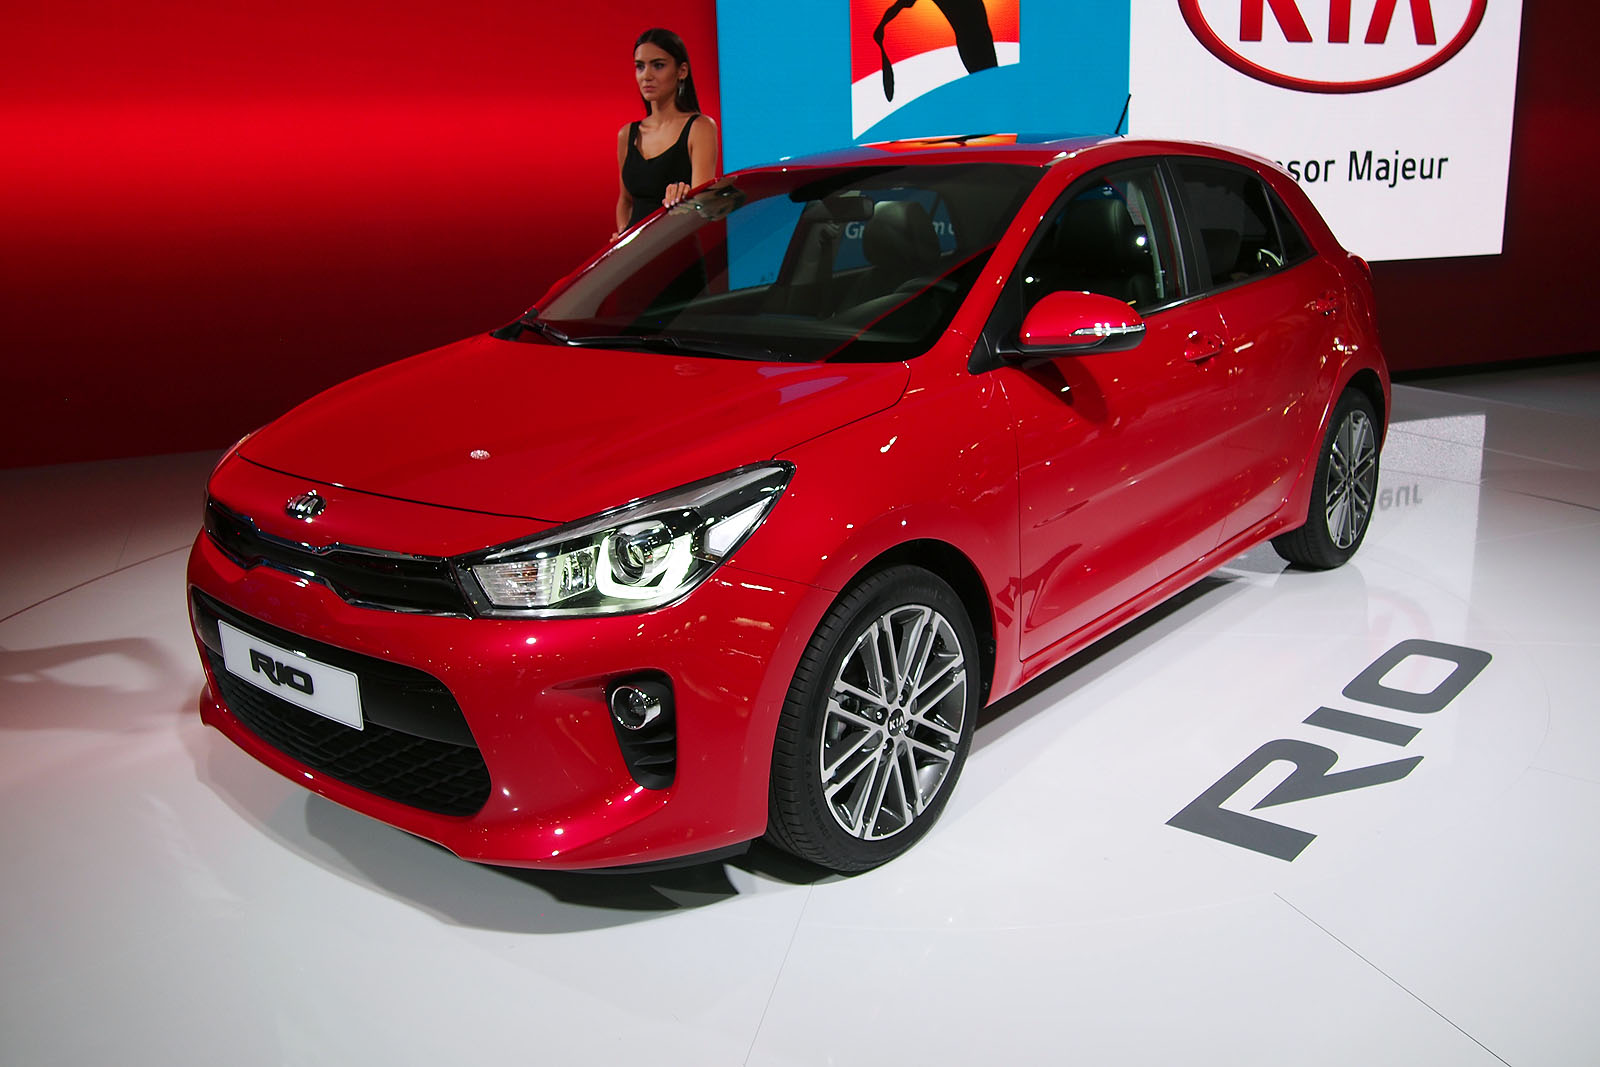 2018 kia rio debuts with new 3 cylinder engine more mature style news. Black Bedroom Furniture Sets. Home Design Ideas